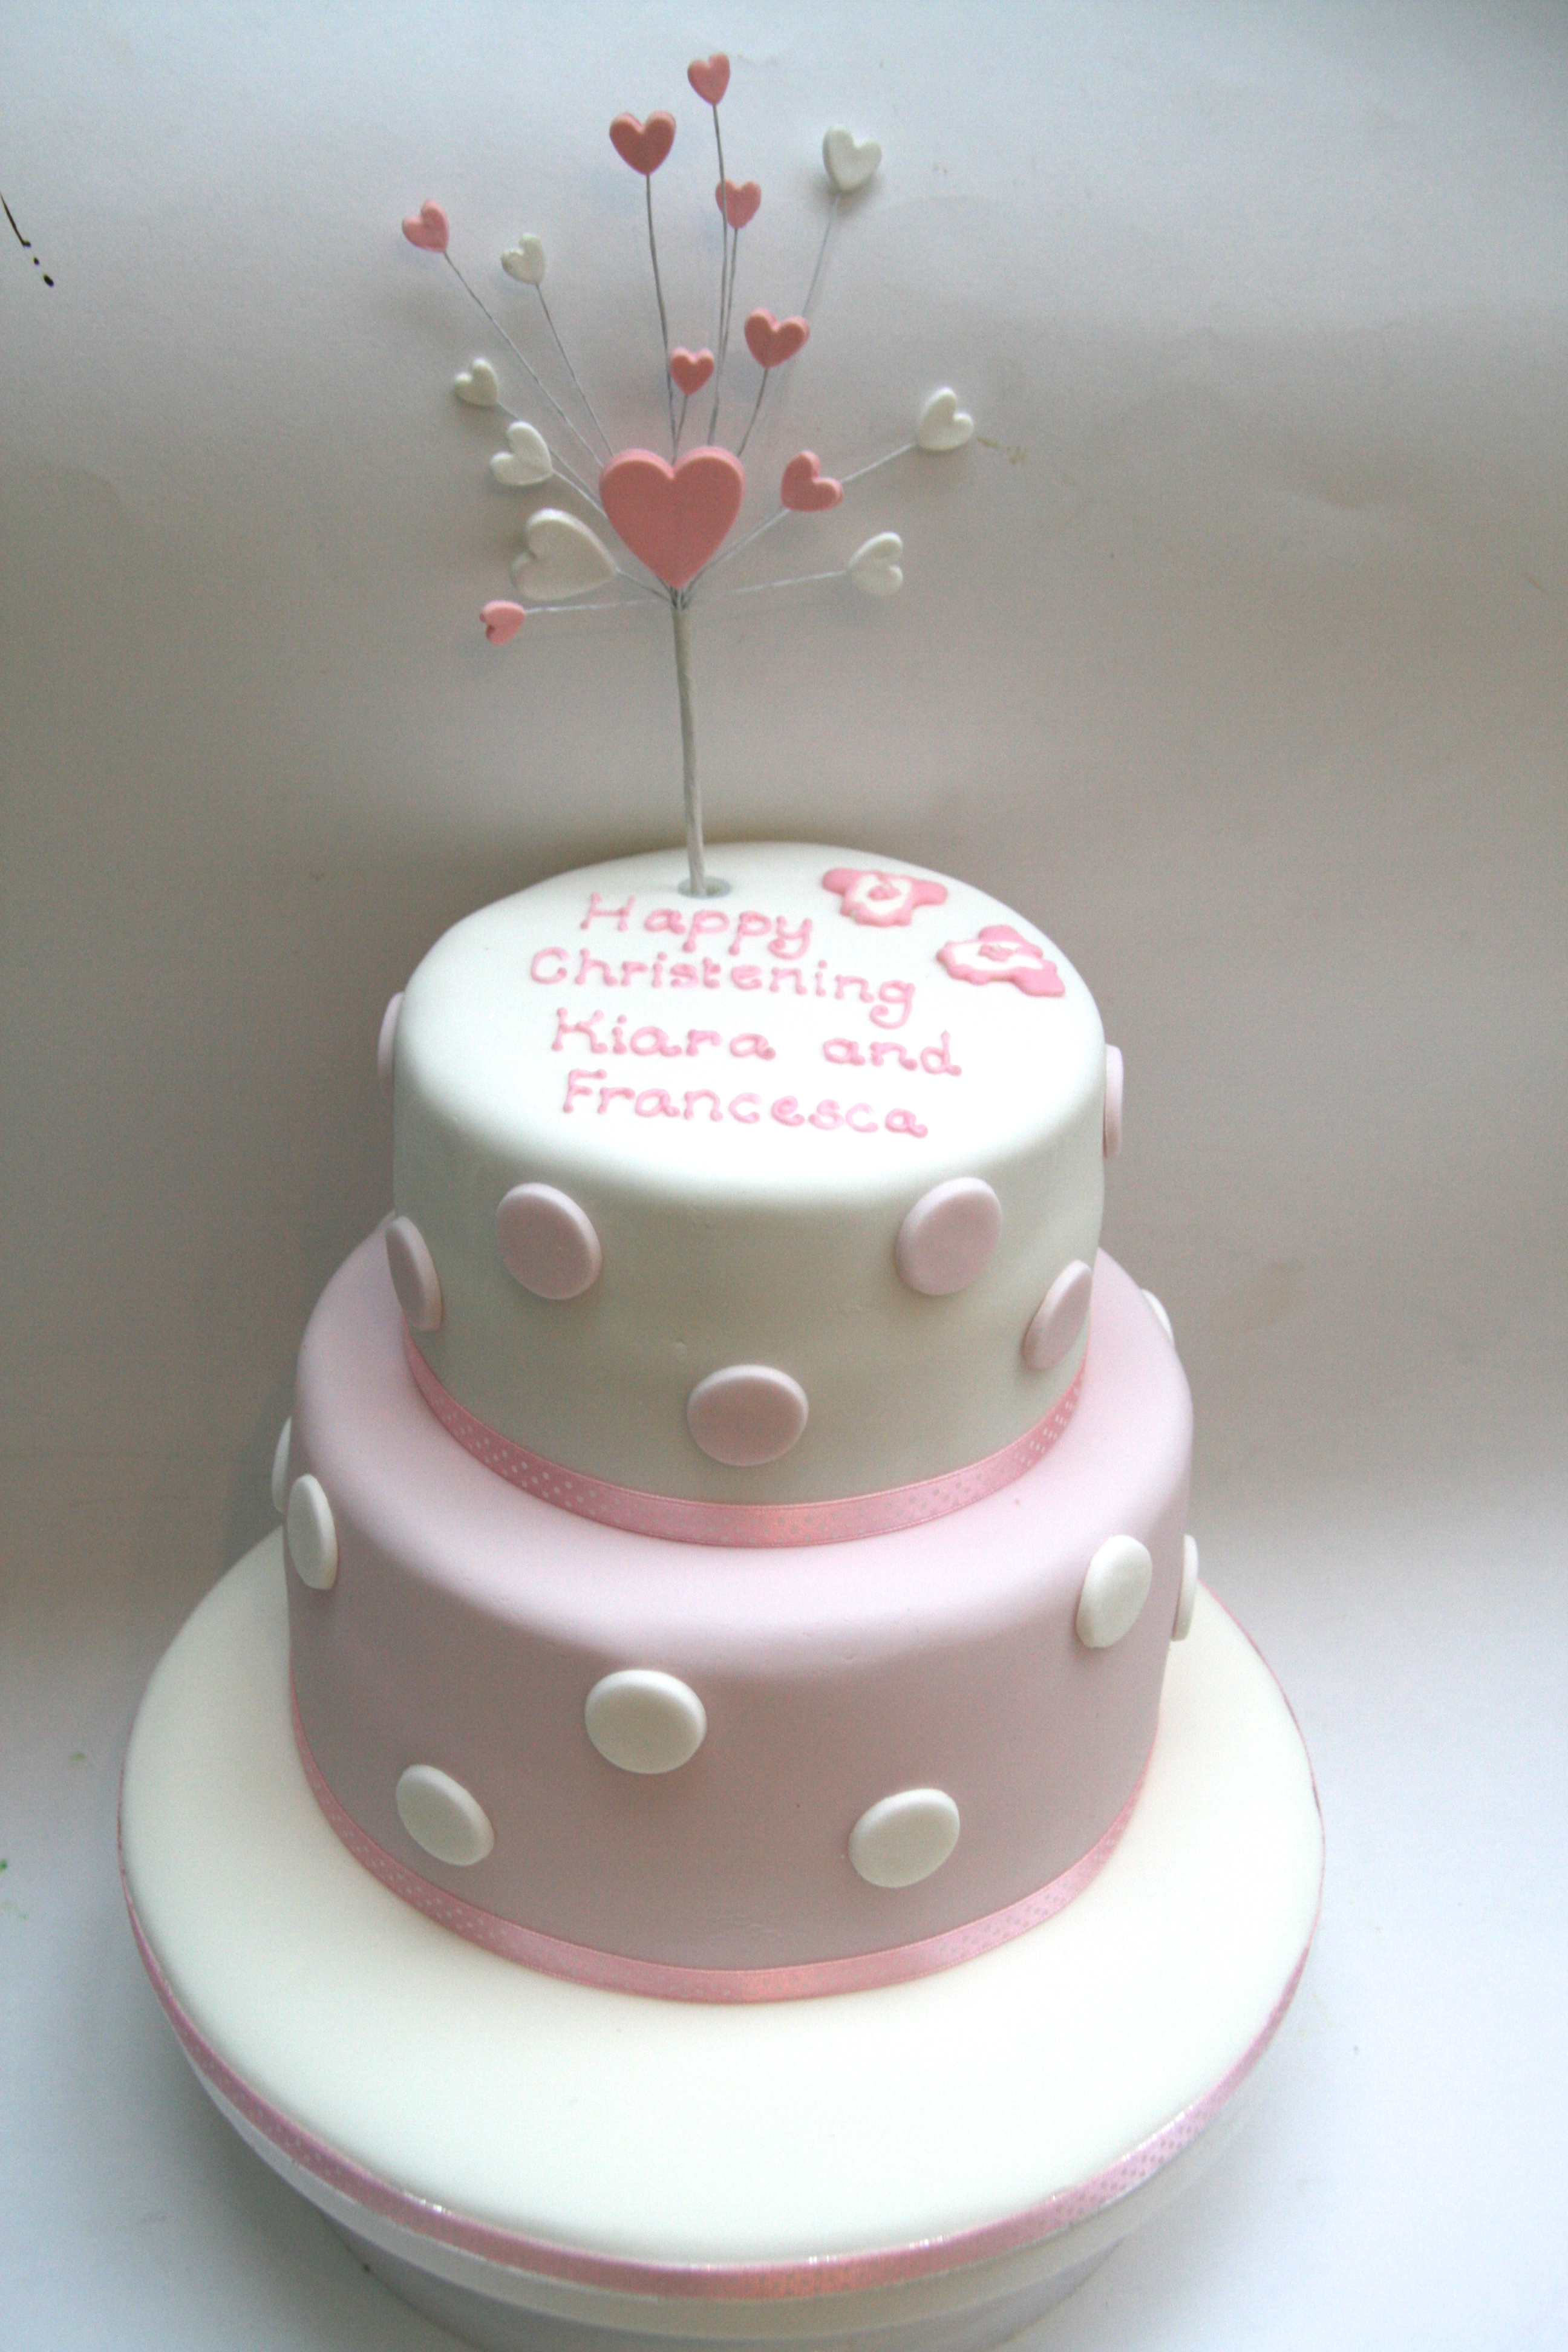 Christening Cake Designs For Twins : Twins Christening Cake Etoile Bakery